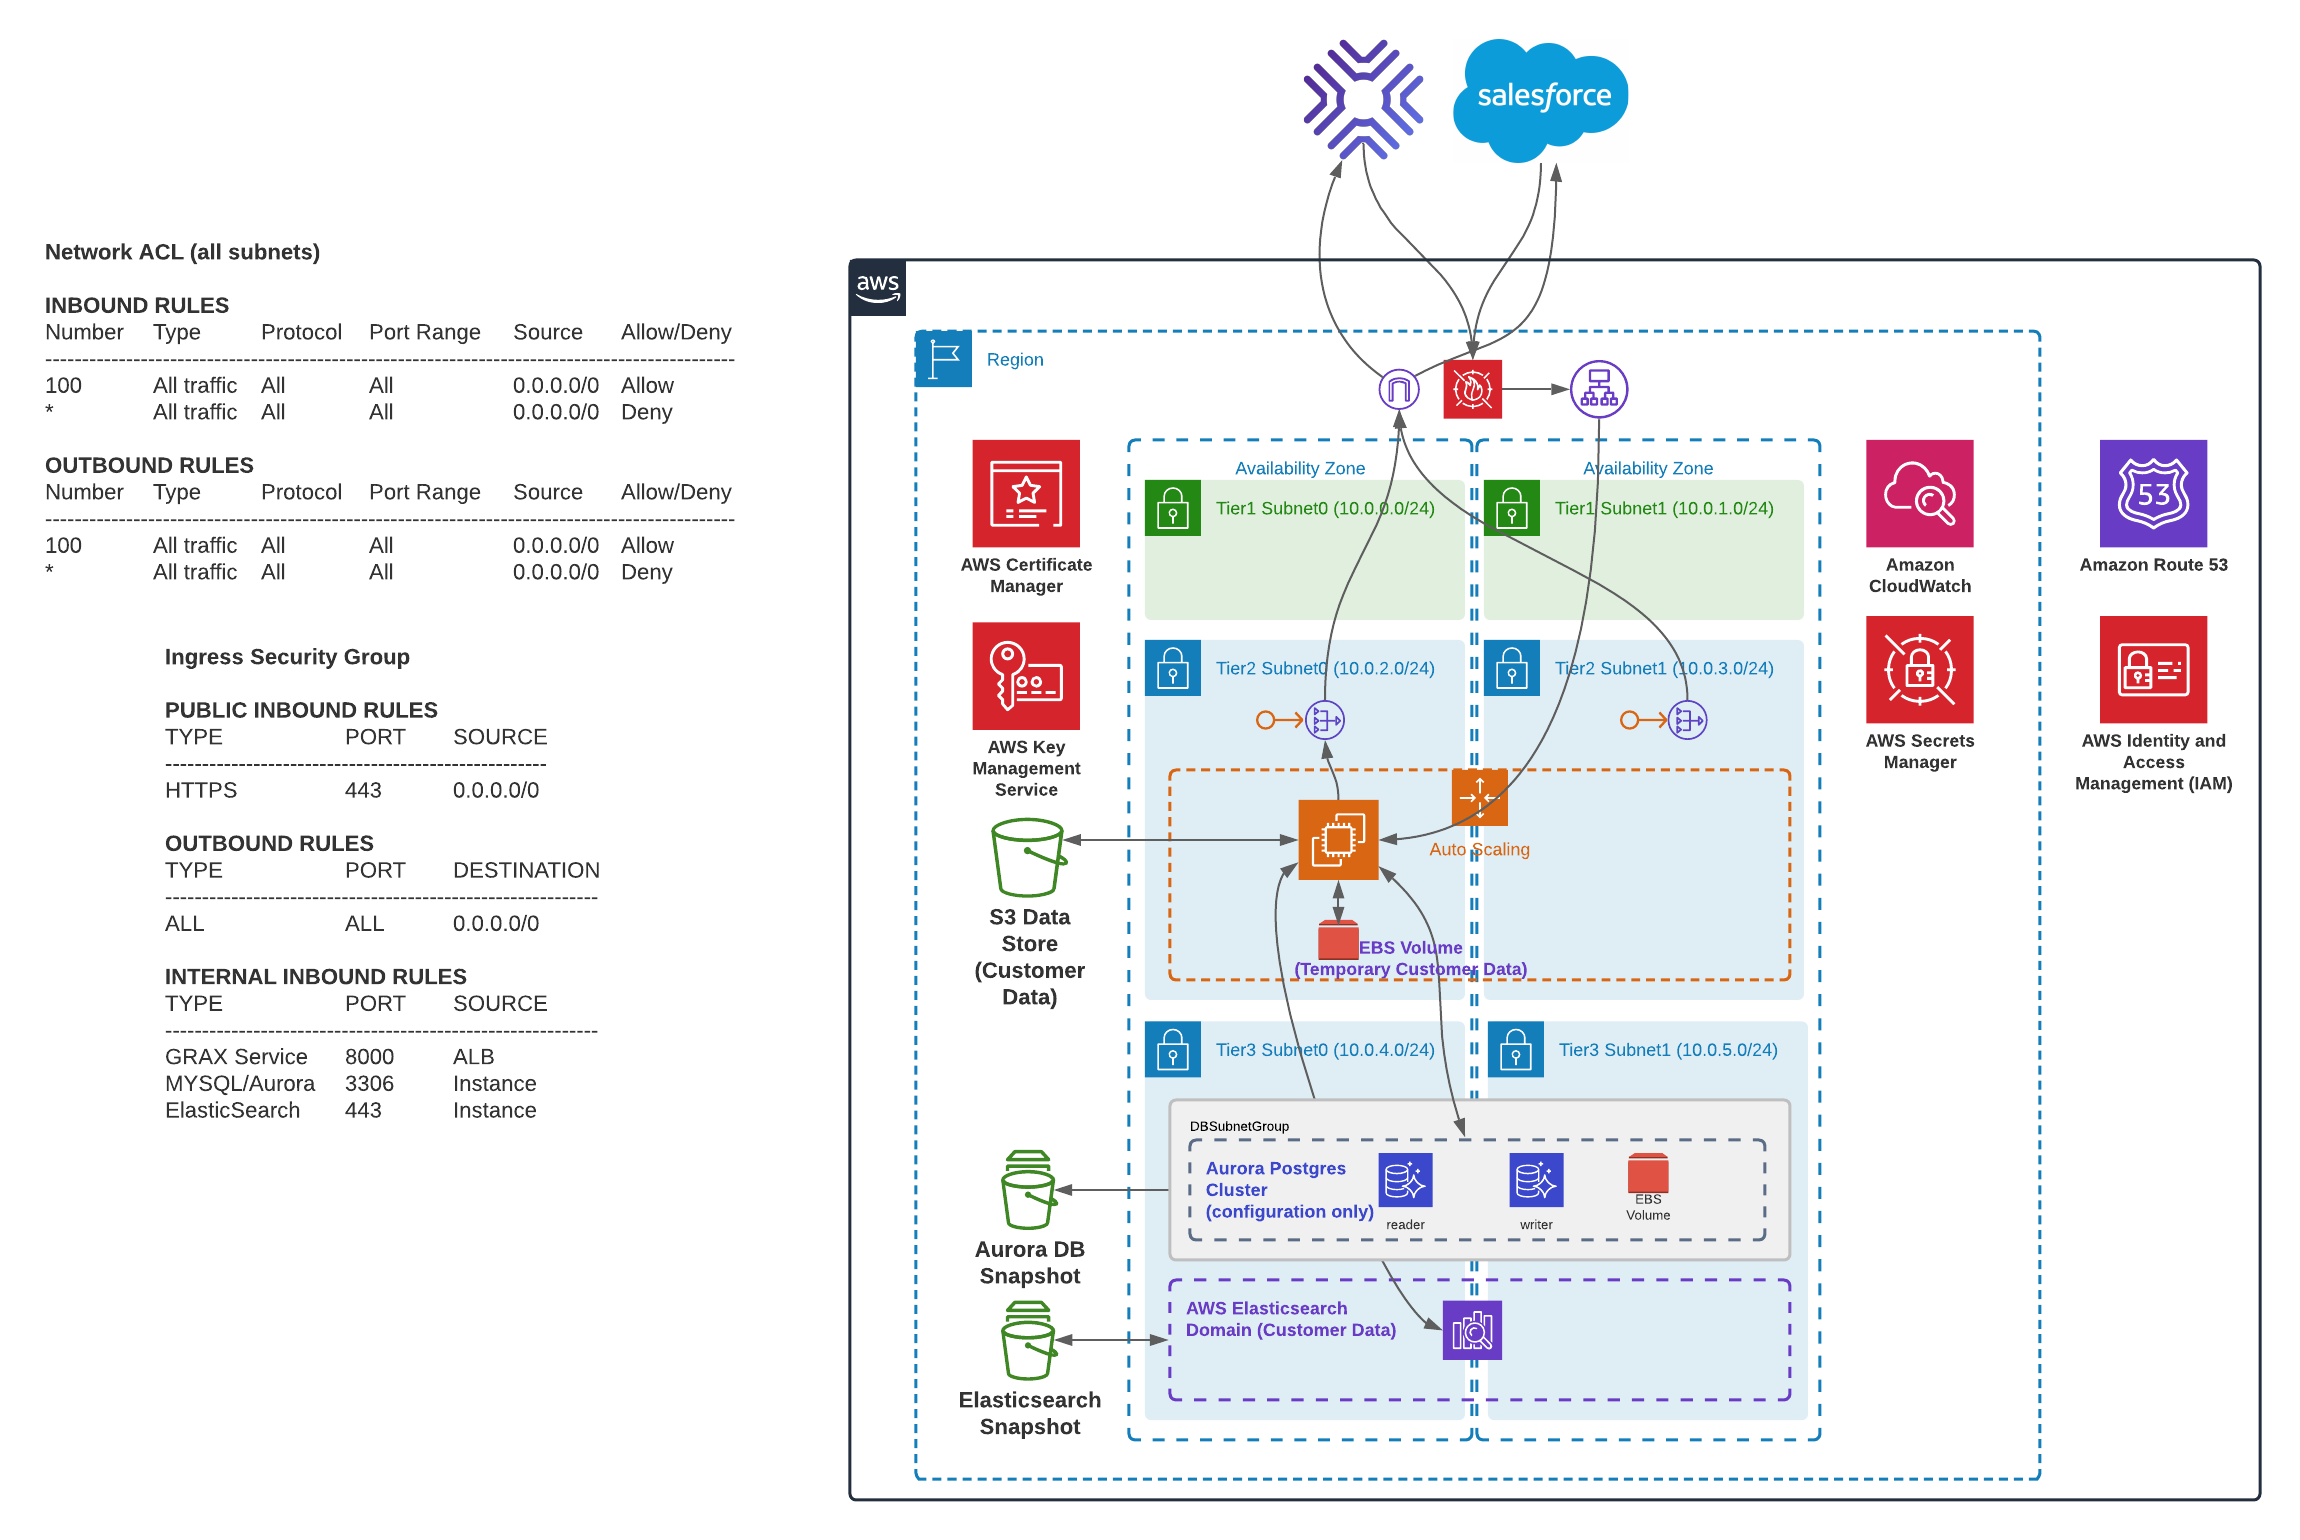 GRAX - Detailed Network Diagrams - AWS virutal appliance network (1).png